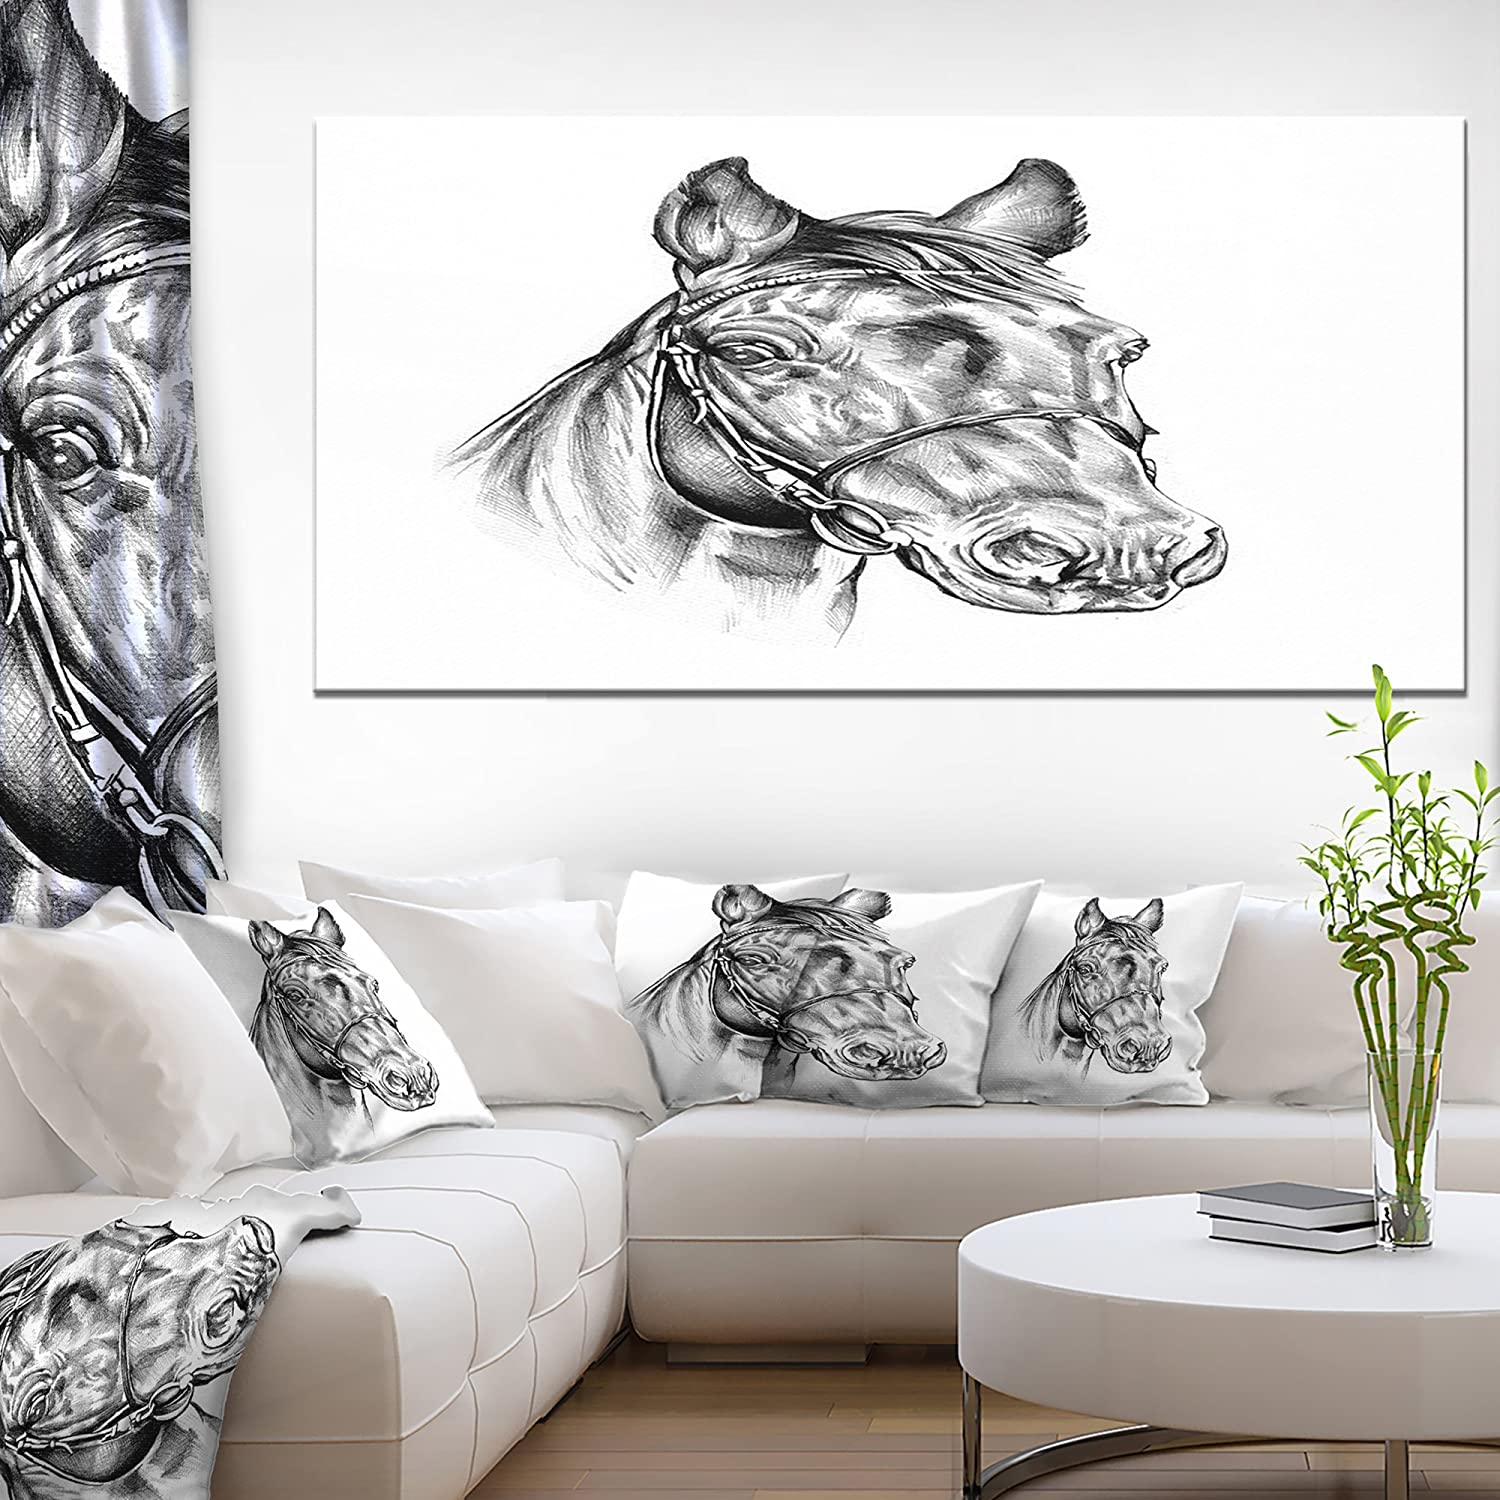 Designart Freehand Horse Head Pencil Drawing Canvas Wall Artwork 28 X 60 X 2 White Posters Prints